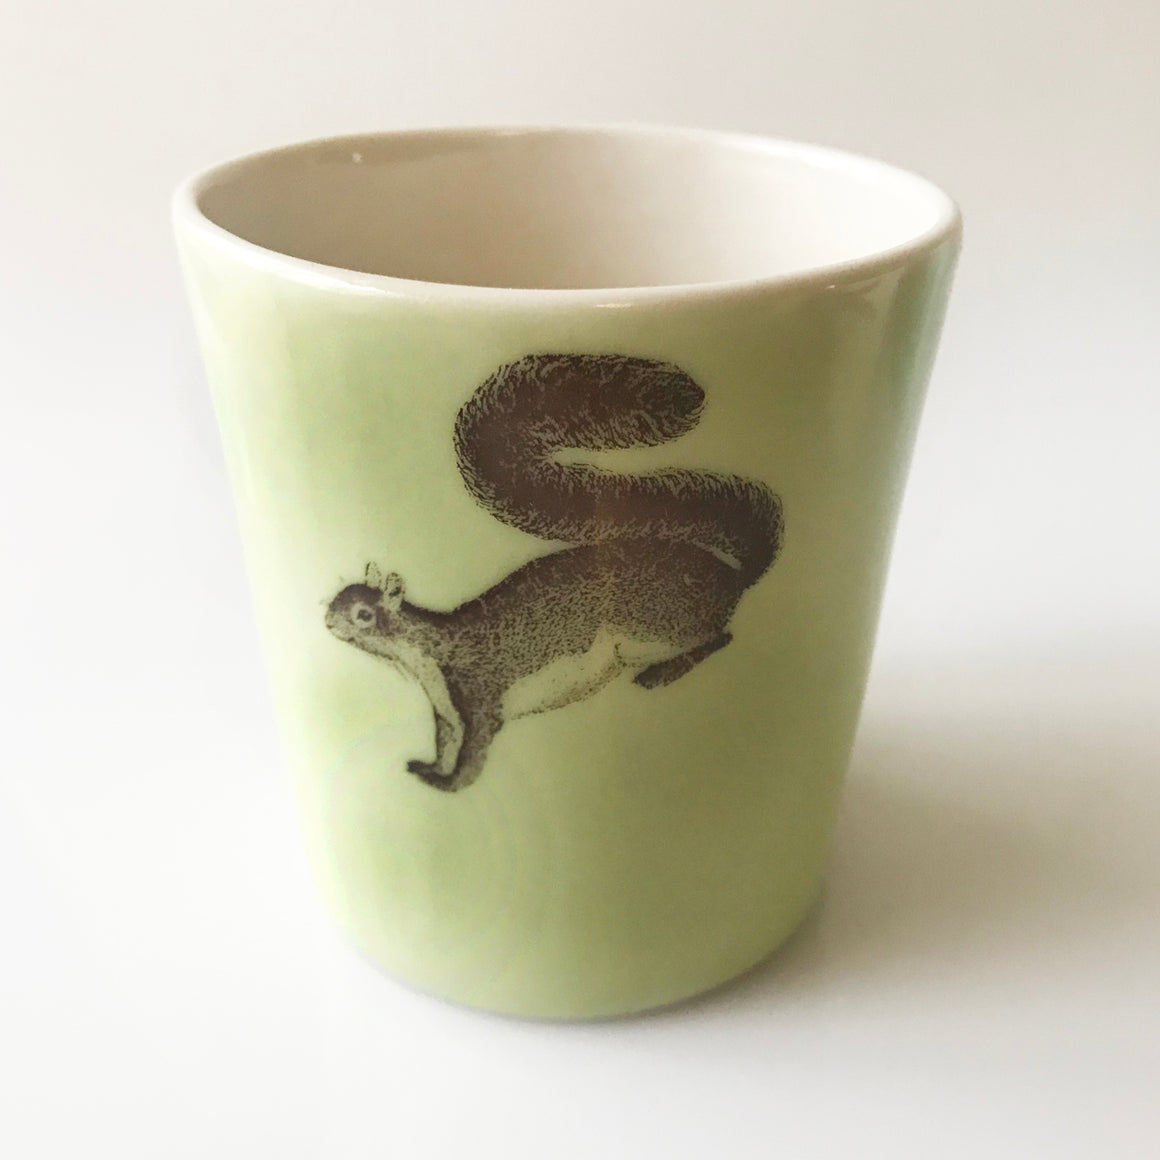 12oz Porcelain Squirrel Tumbler - KESTREL